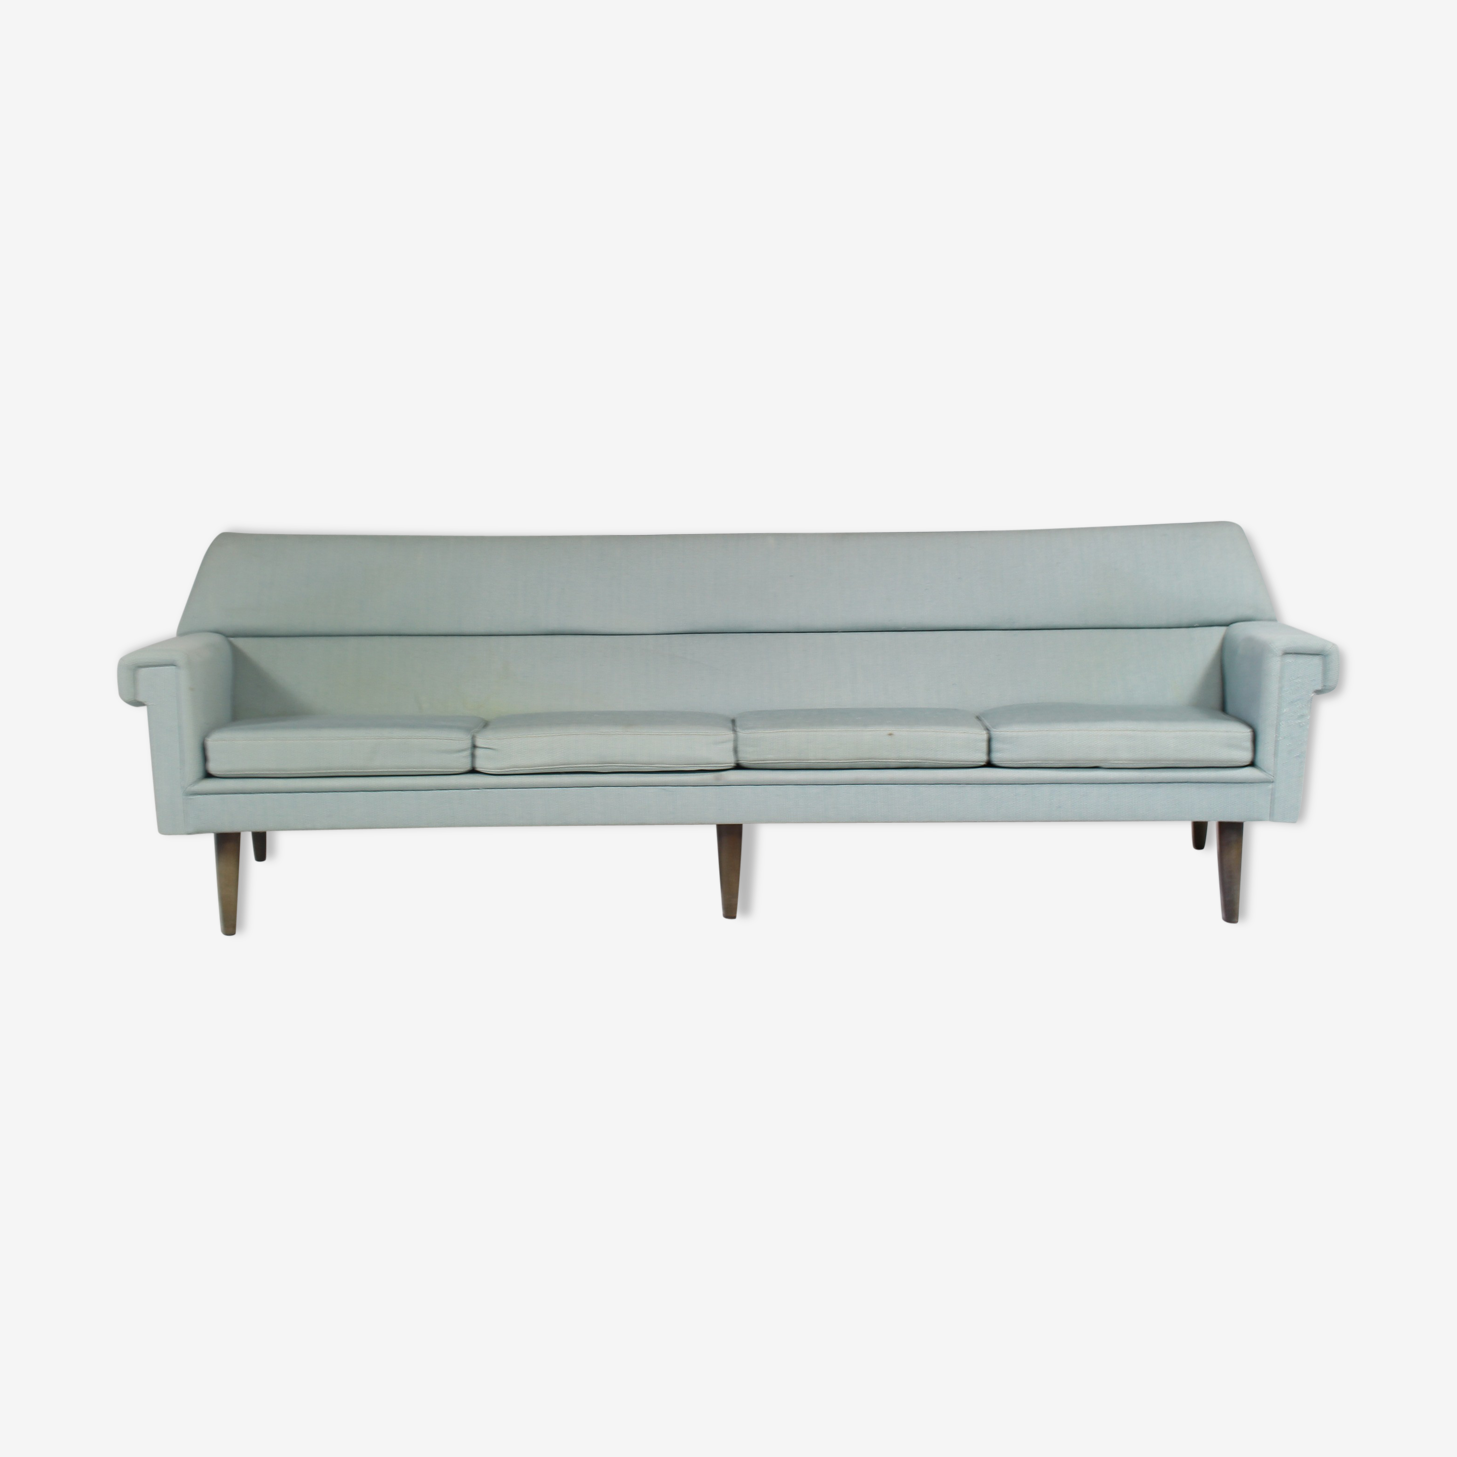 Vintage curved sofa by Kurt Ostervig, 1960 s